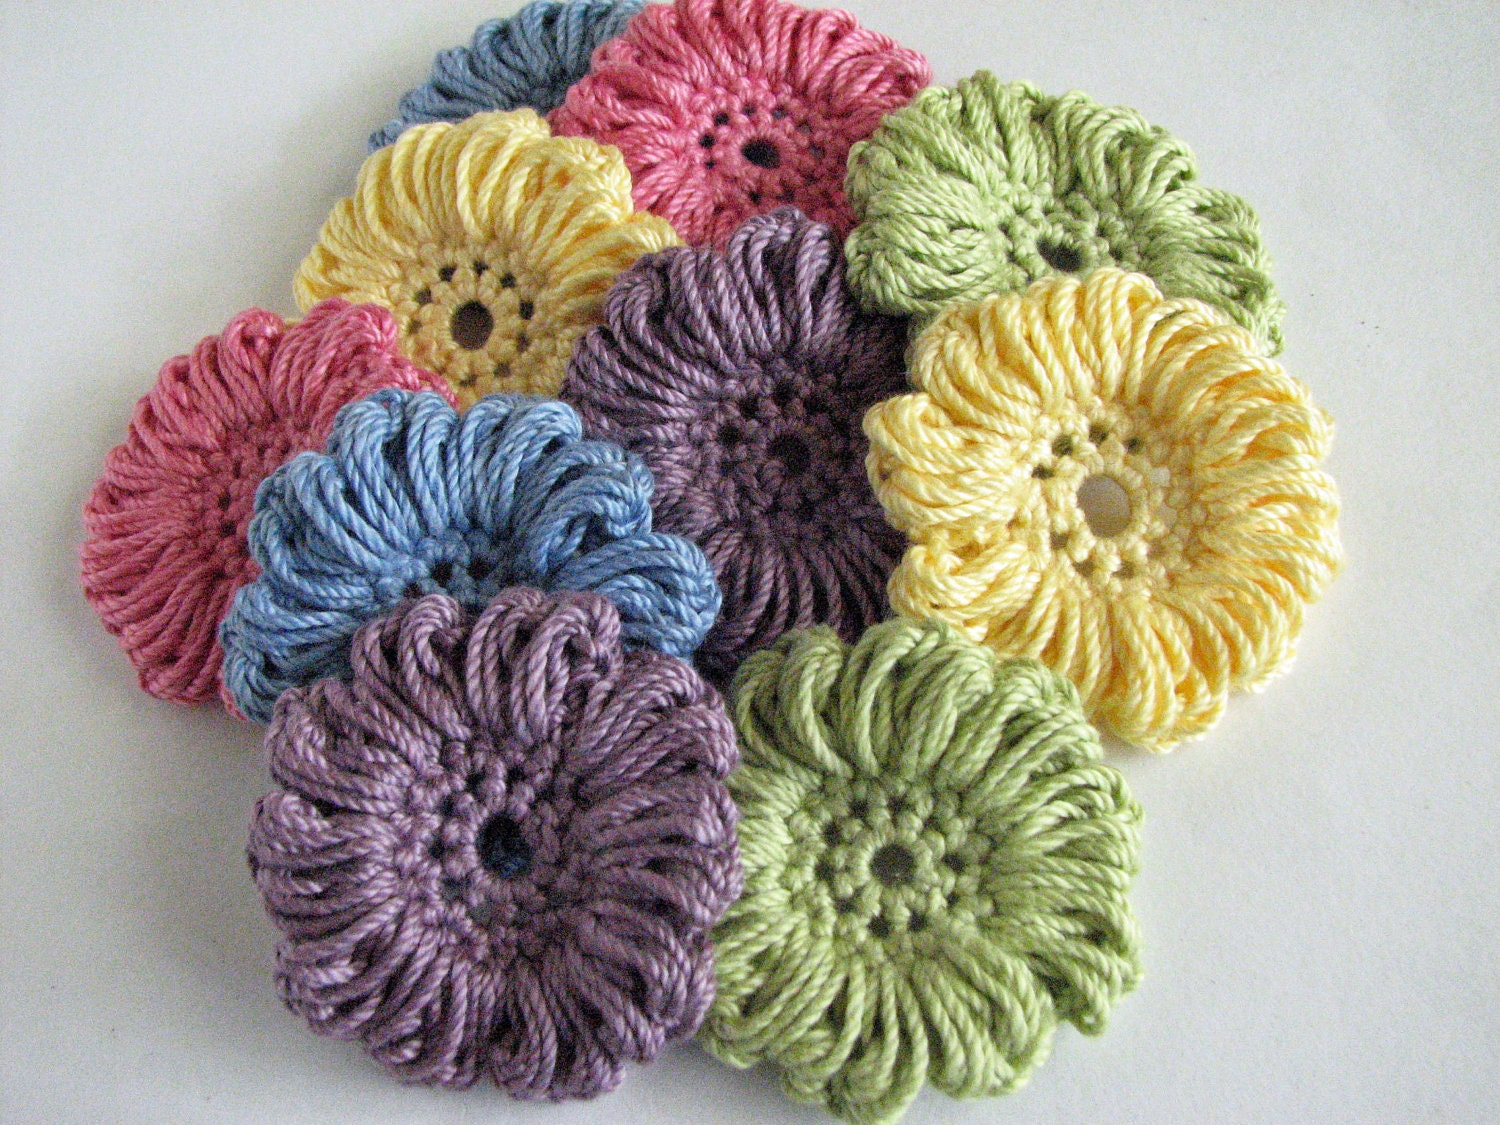 Crochet Thread Flowers 10 Large Flower Appliques